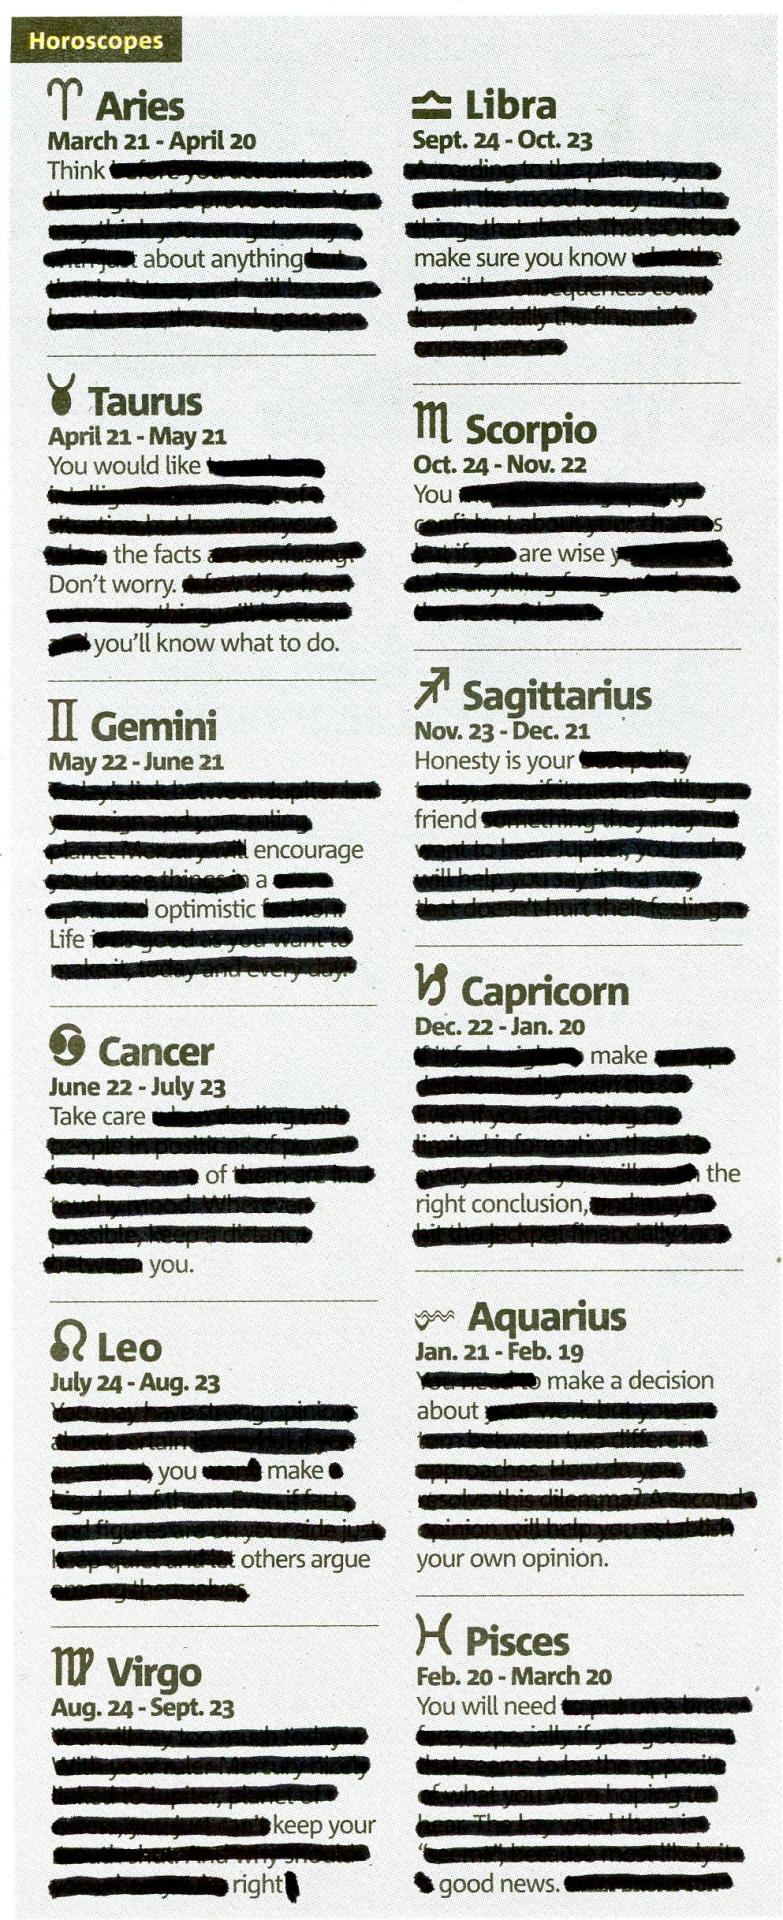 HOROSCOPE - APRIL 24, 2013